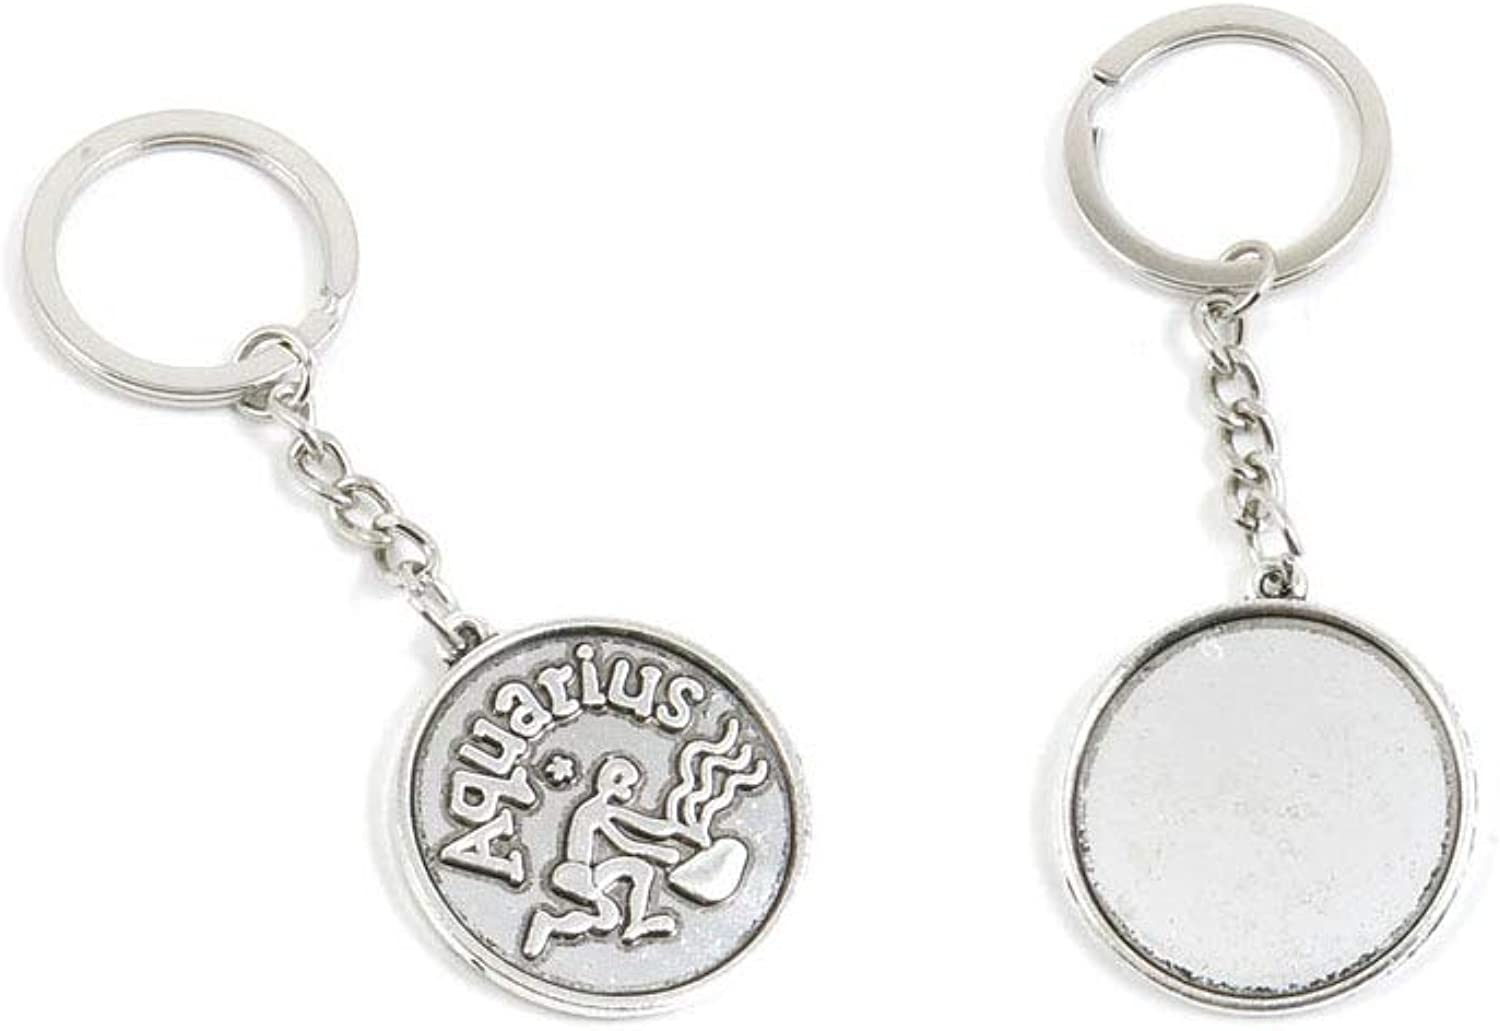 100 PCS Antique Silver Keyrings Keychains Key Ring Chains Tags Clasps O3HF8 Libra Round Cabochon Setting Blank